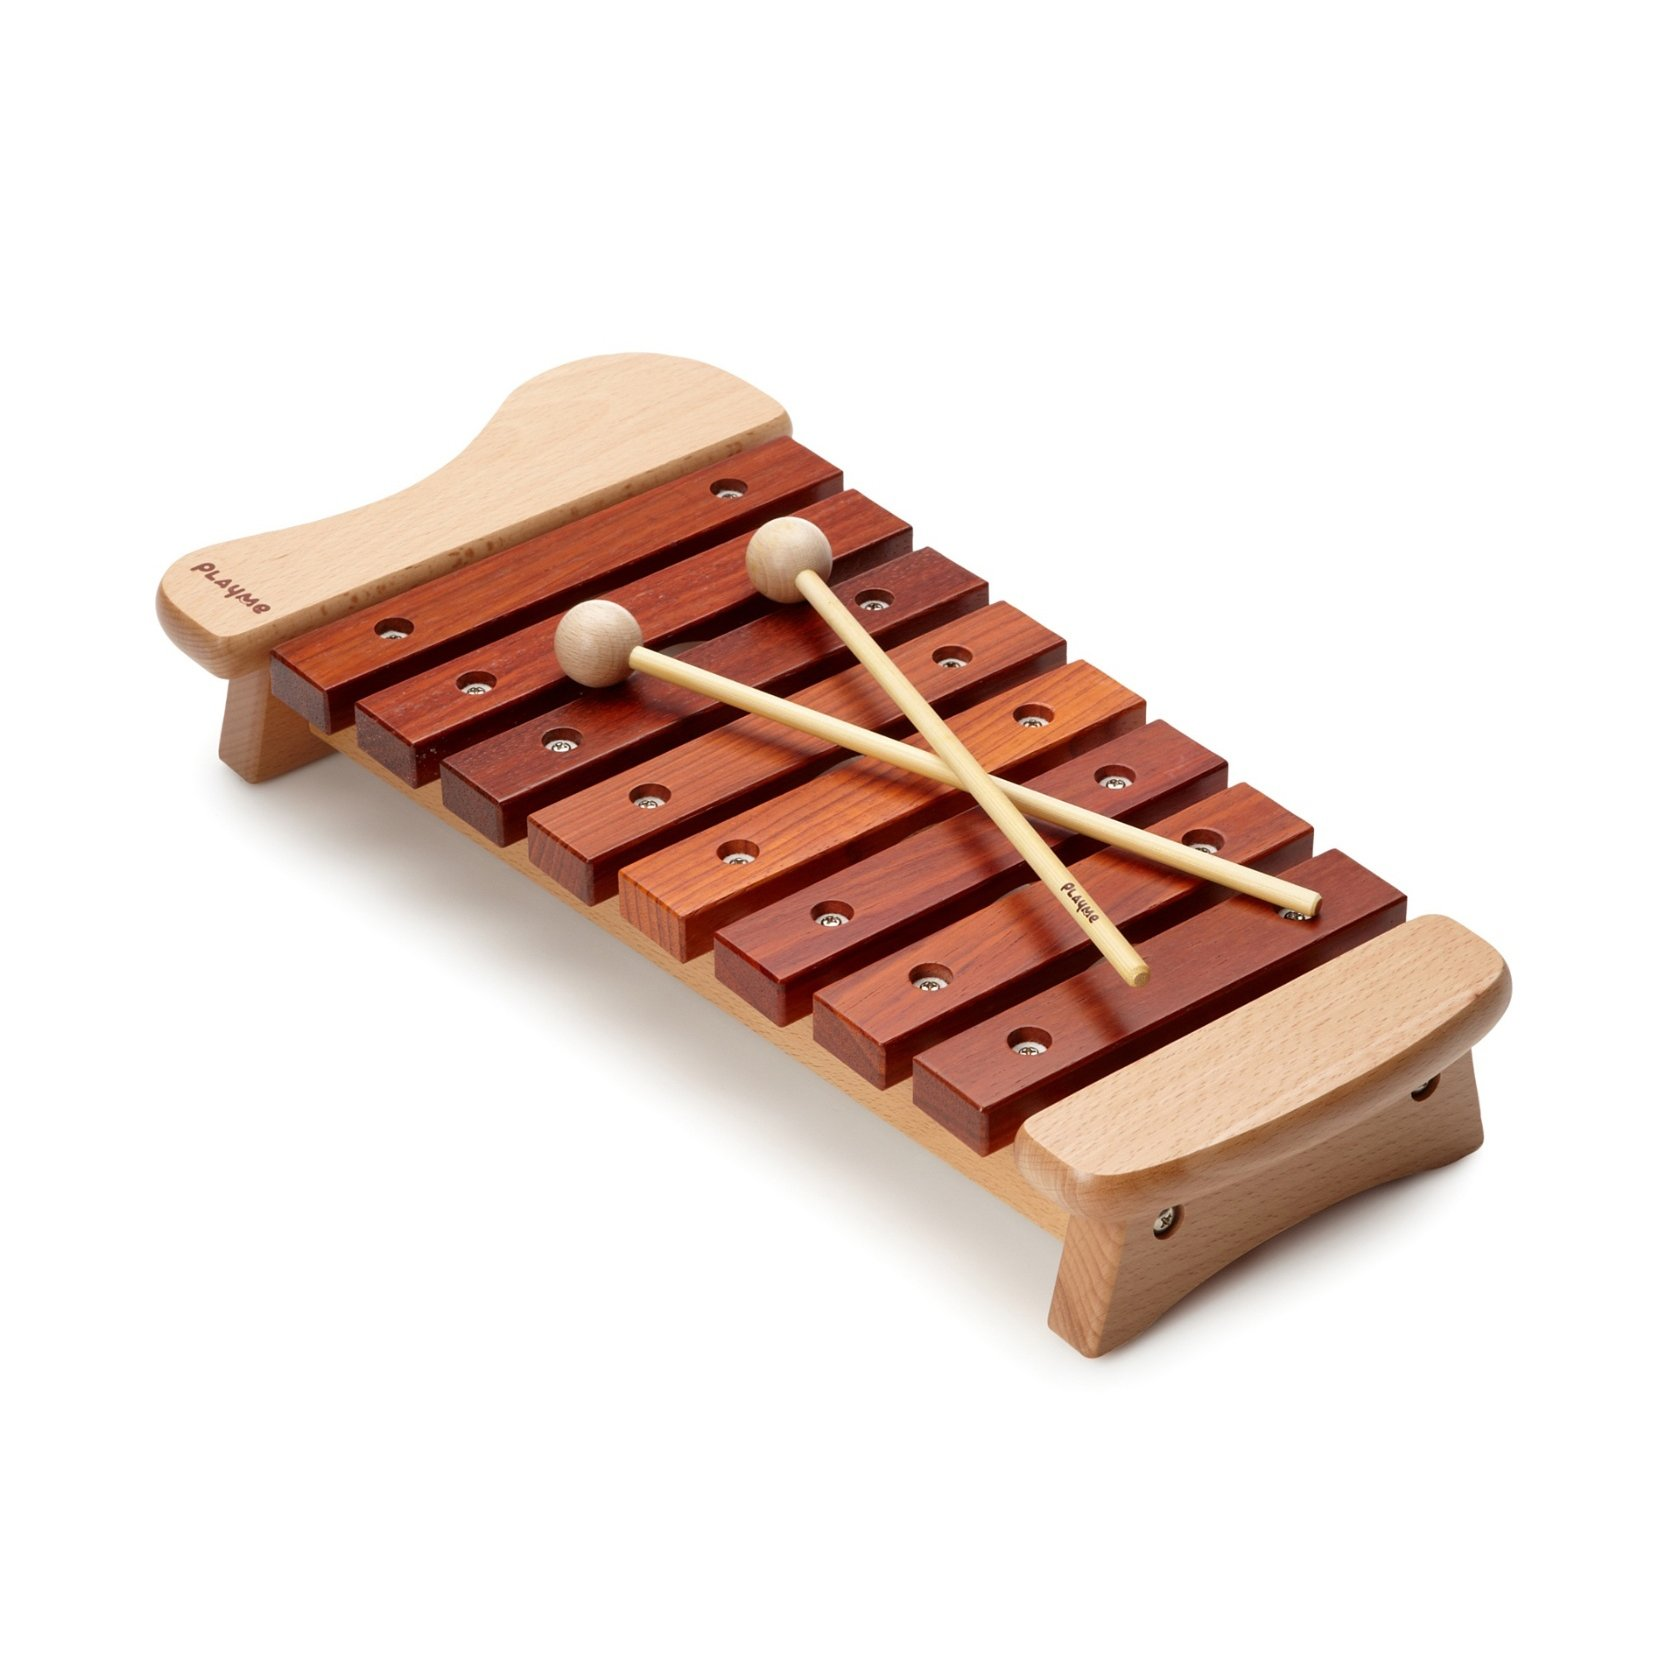 Playme Wooden Xylophone 8 Keys by Beyond123 (Image #1)